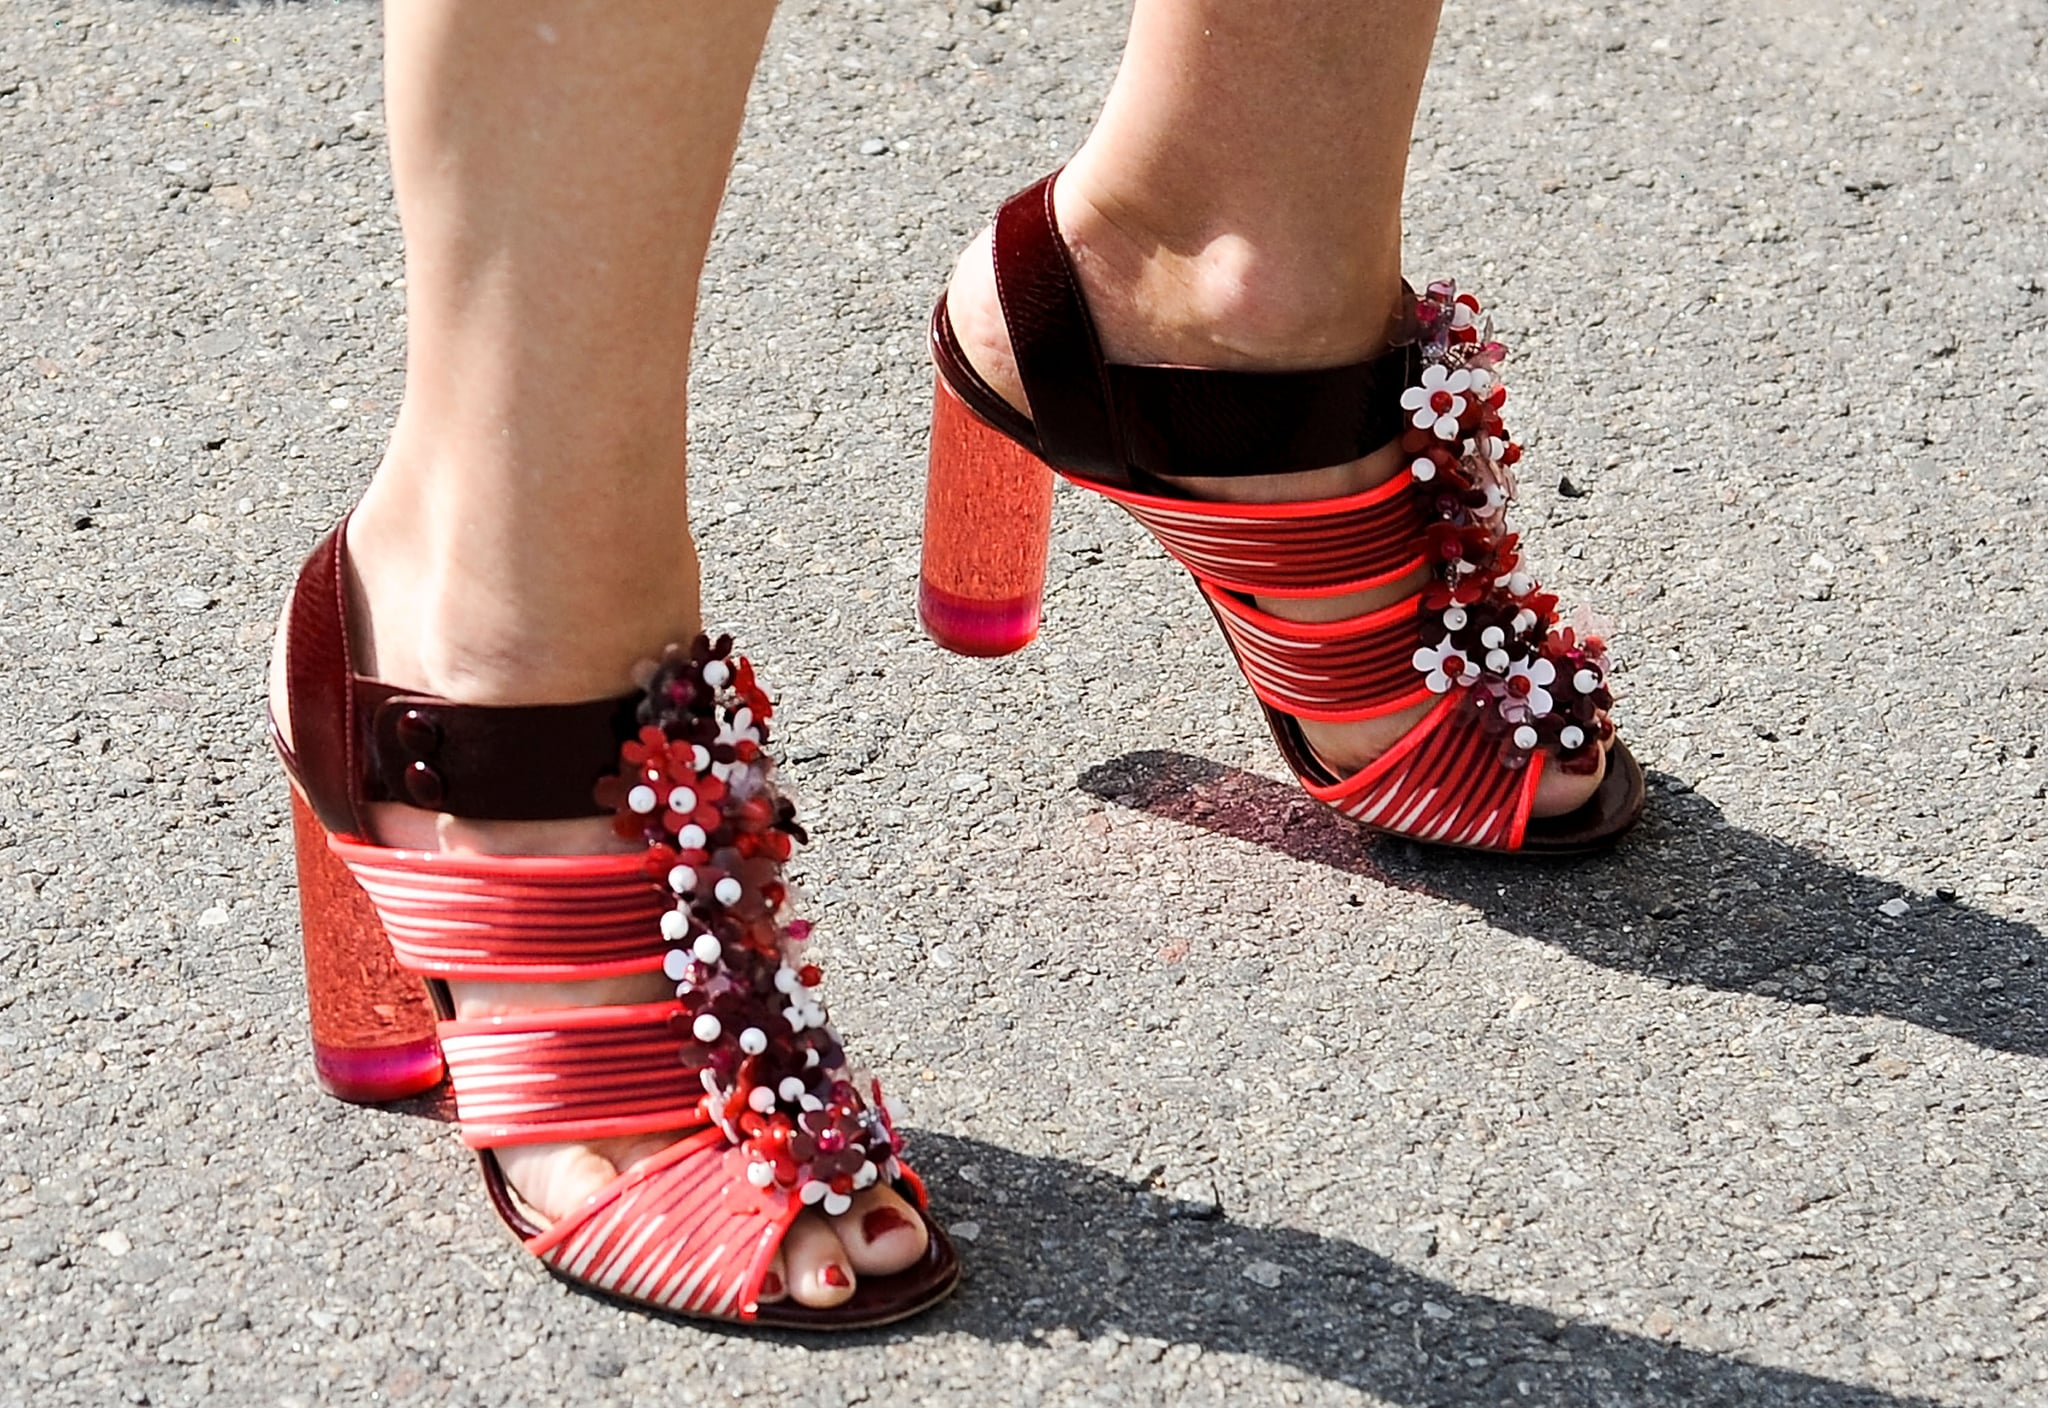 The coolest kind of quirky heels.